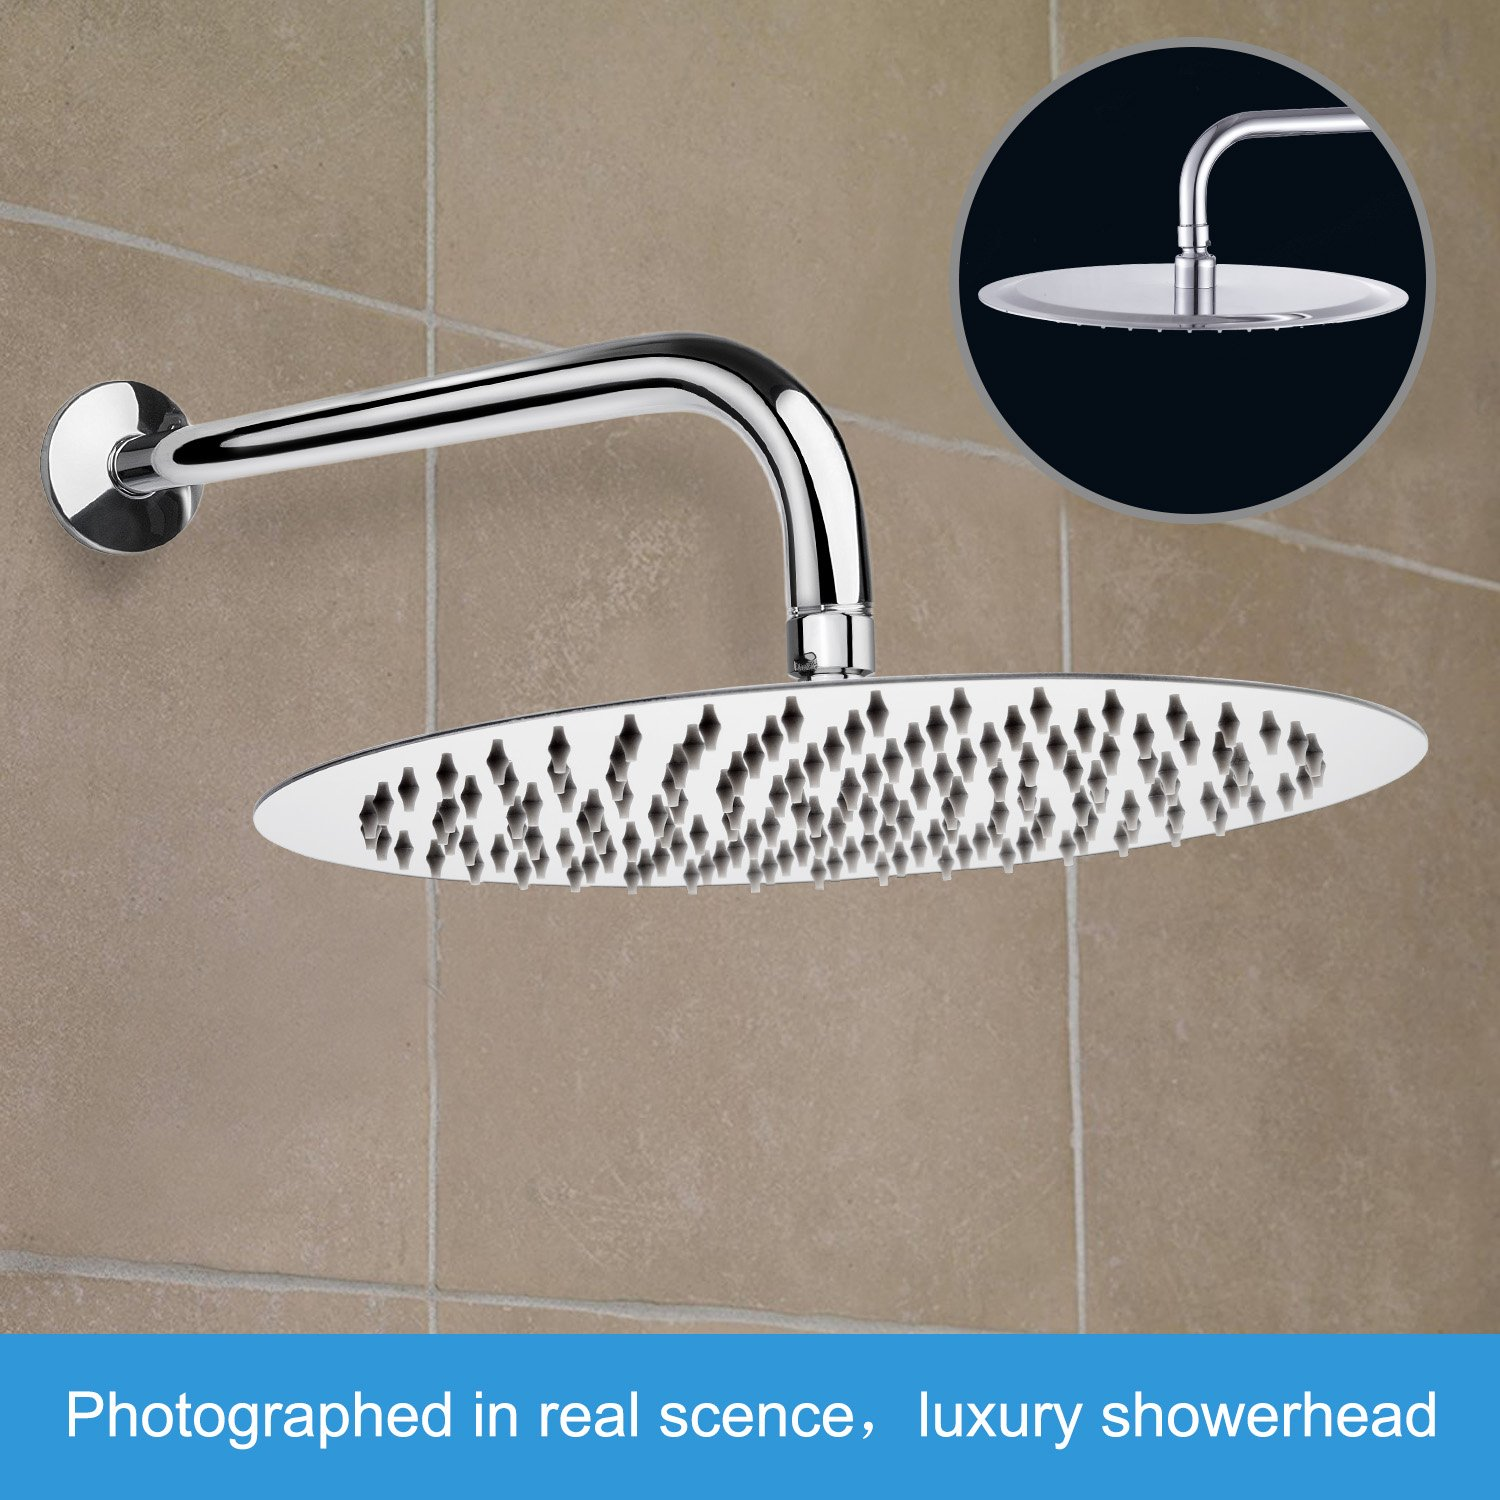 12 Inch Shower Head with 15 Inch Shower Arm, NearMoon Ultra-Thin Stainless Steel Rainfall Showerhead, Round Bath Shower With Fixed Arm, Circular Lager Bathing Head